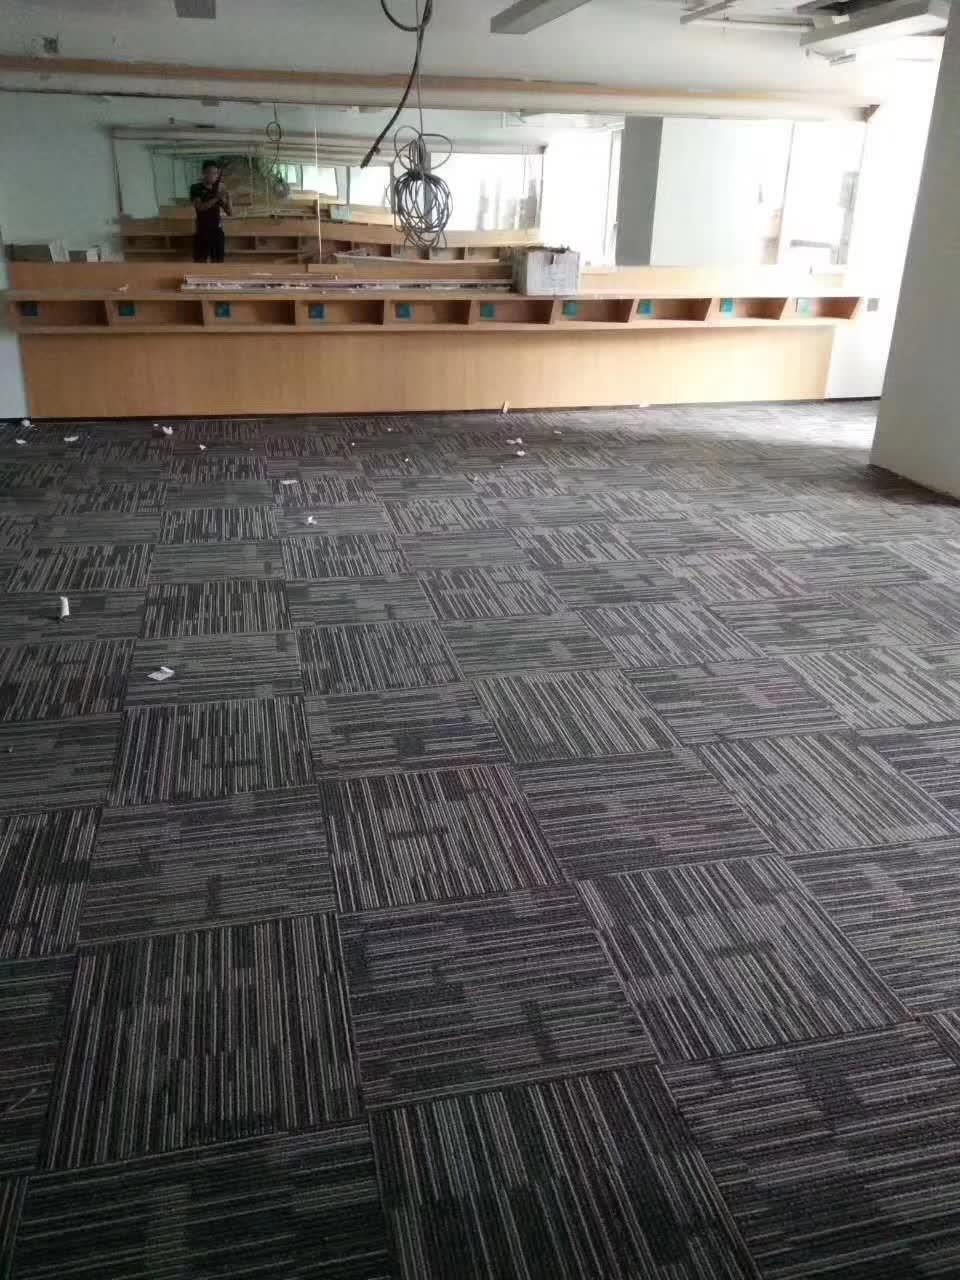 Image of: China Peel And Stick Self Adhesive Carpet Floor Tile 50 50cm Tufted Hotel Home Office Removable Pp Commercial Carpet Tiles China Carpet Tile And Office Carpet Price